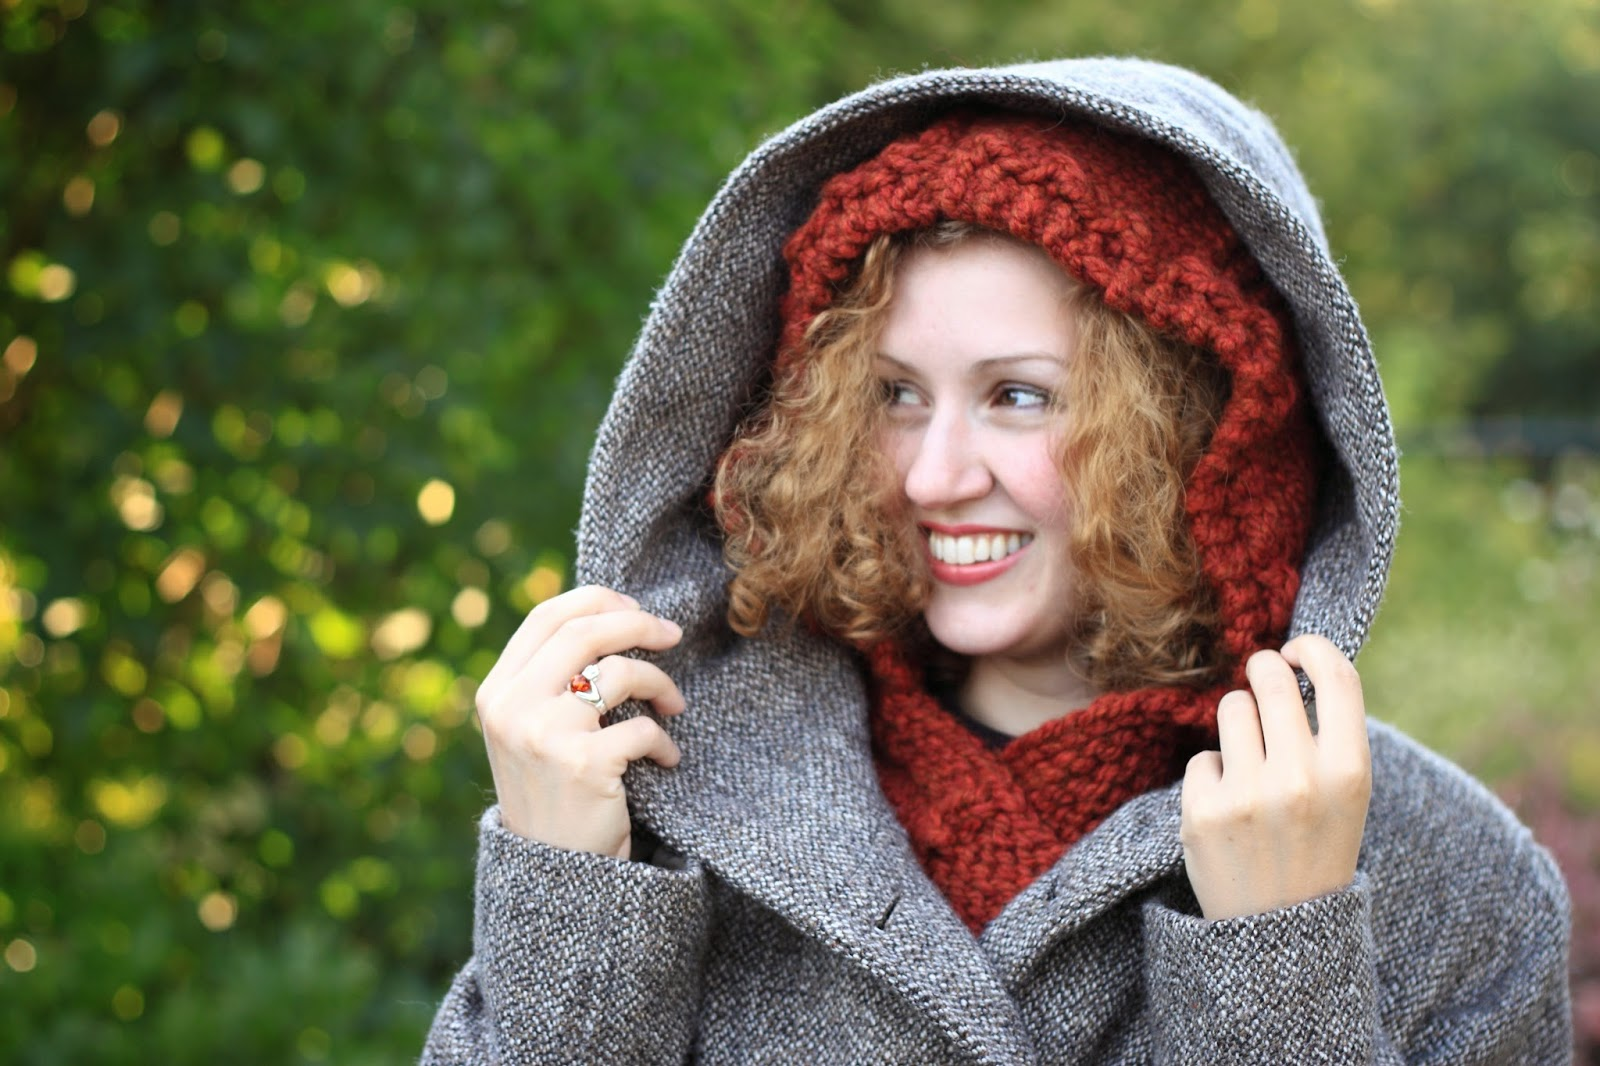 Hooded Cowl Knitting Pattern Ravelry : Through the Knitting Lens: Fall Woods Quilt Squares: Hooded Cowl -- New Patte...